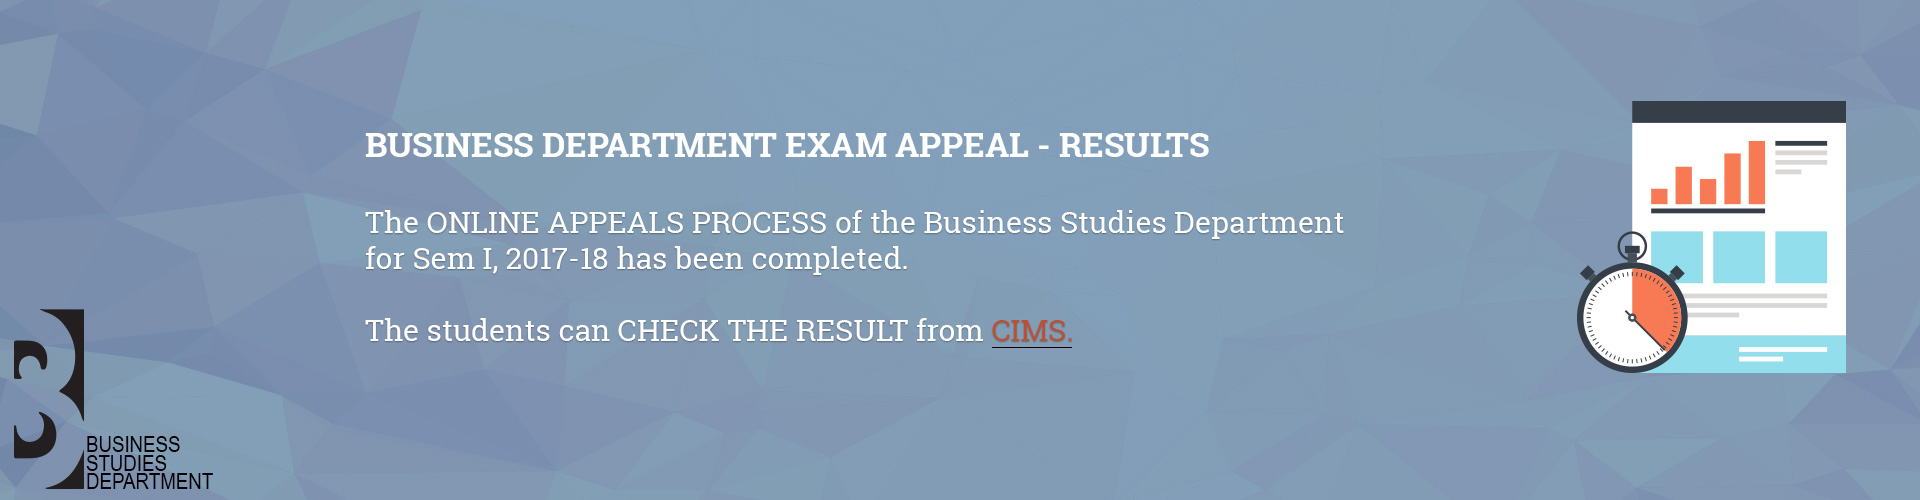 Business Department Exam Appeal - Results